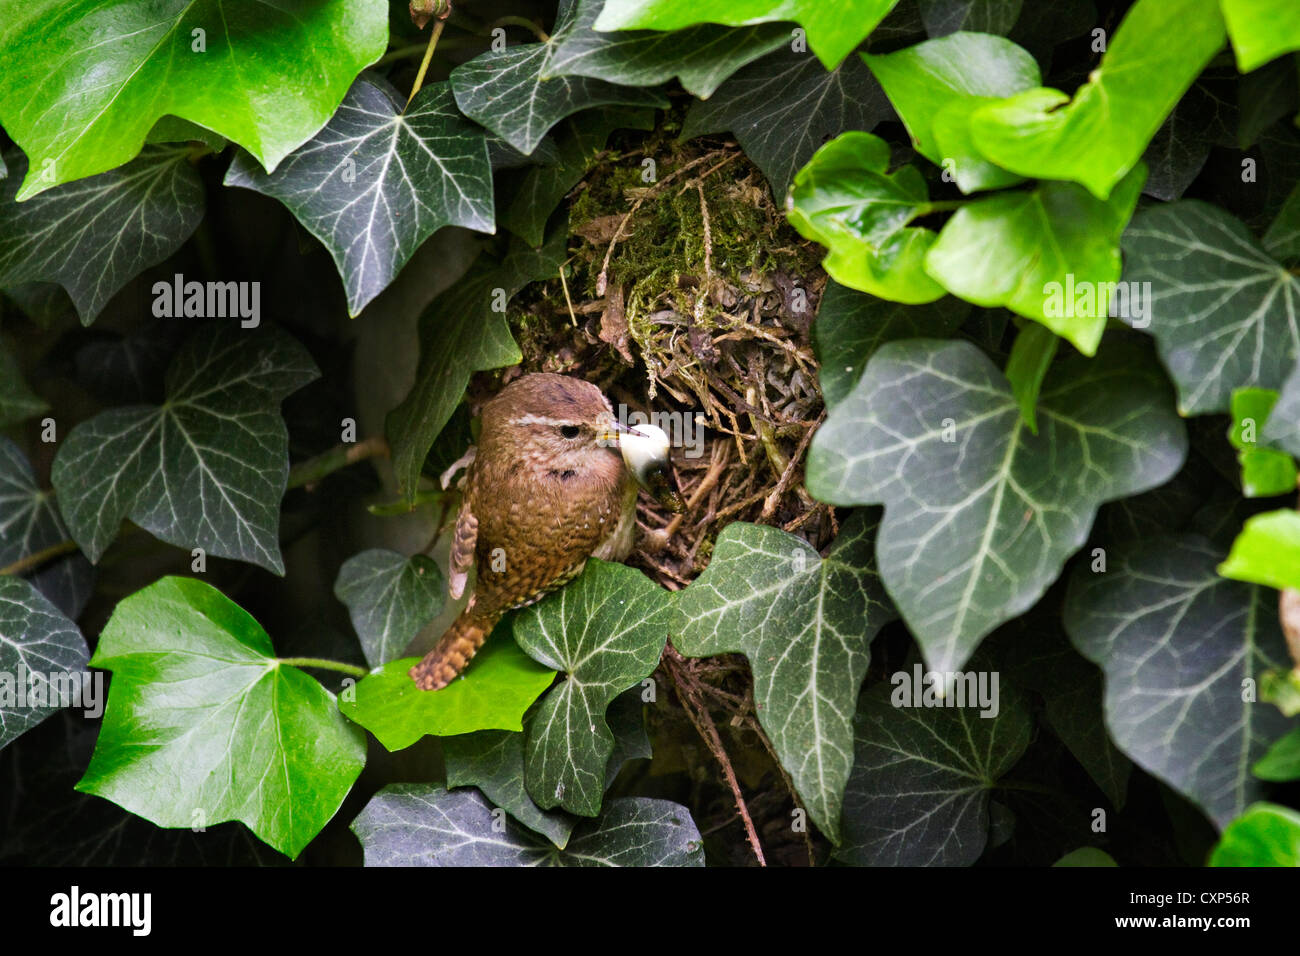 Eurasian wren (Troglodytes troglodytes) removes a fecal sac with feces of nestlings from nest hidden in ivy, Belgium - Stock Image